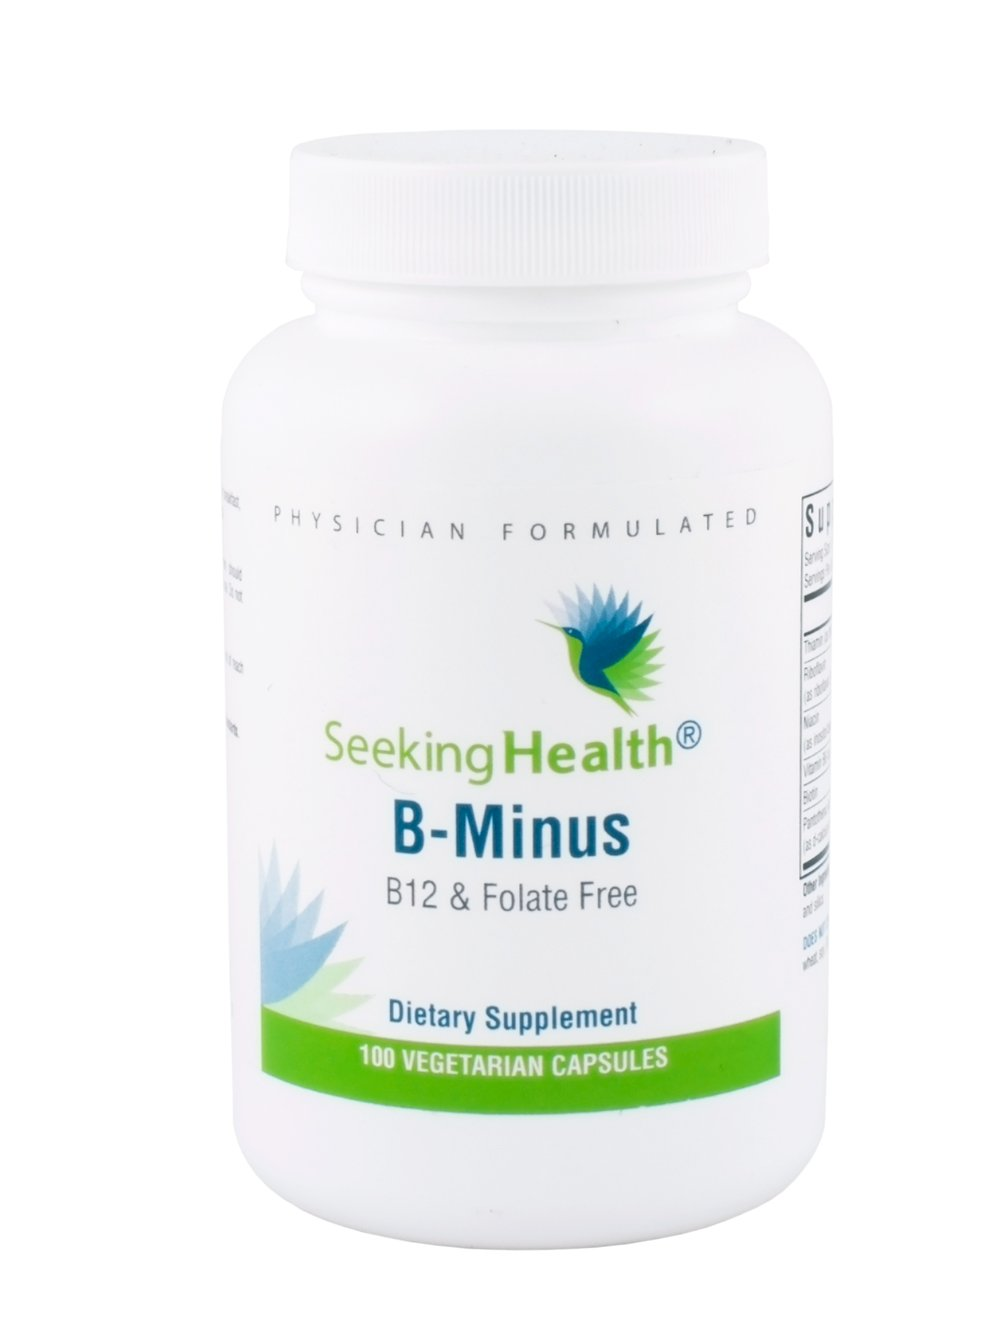 B-Minus | Provides Thiamin, Riboflavin, Niacin, Vitamin B6, Pantothenic Acid, Biotin | Free of B12 and Folate | Non-GMO | Physician Formulated | 100 Vegetarian Capsules |Seeking Health